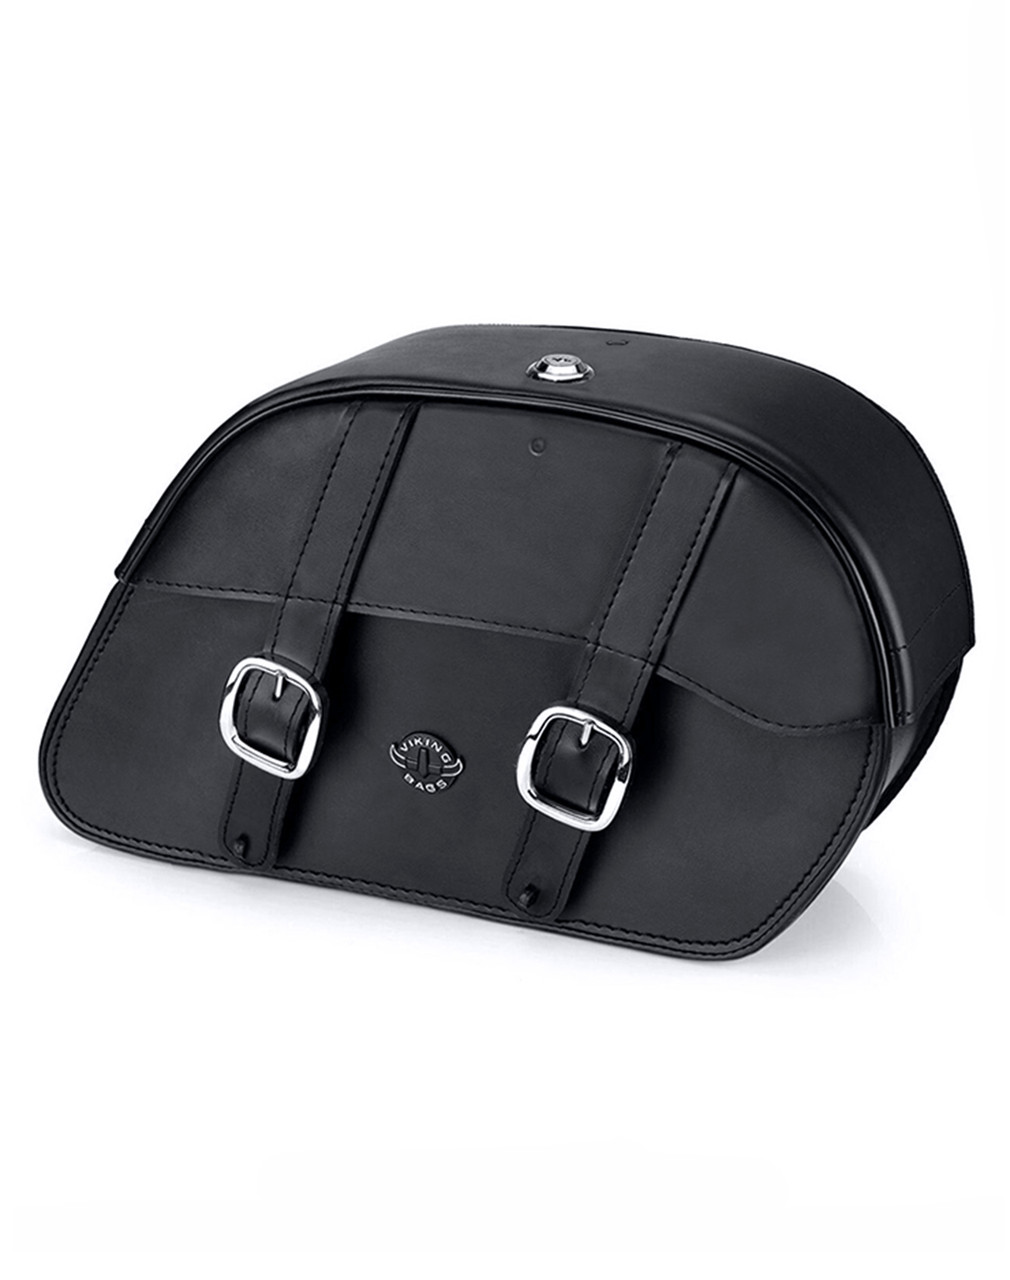 VikingBags Skarner Large Double Strap Victory High Ball Leather Motorcycle Saddlebags bag view